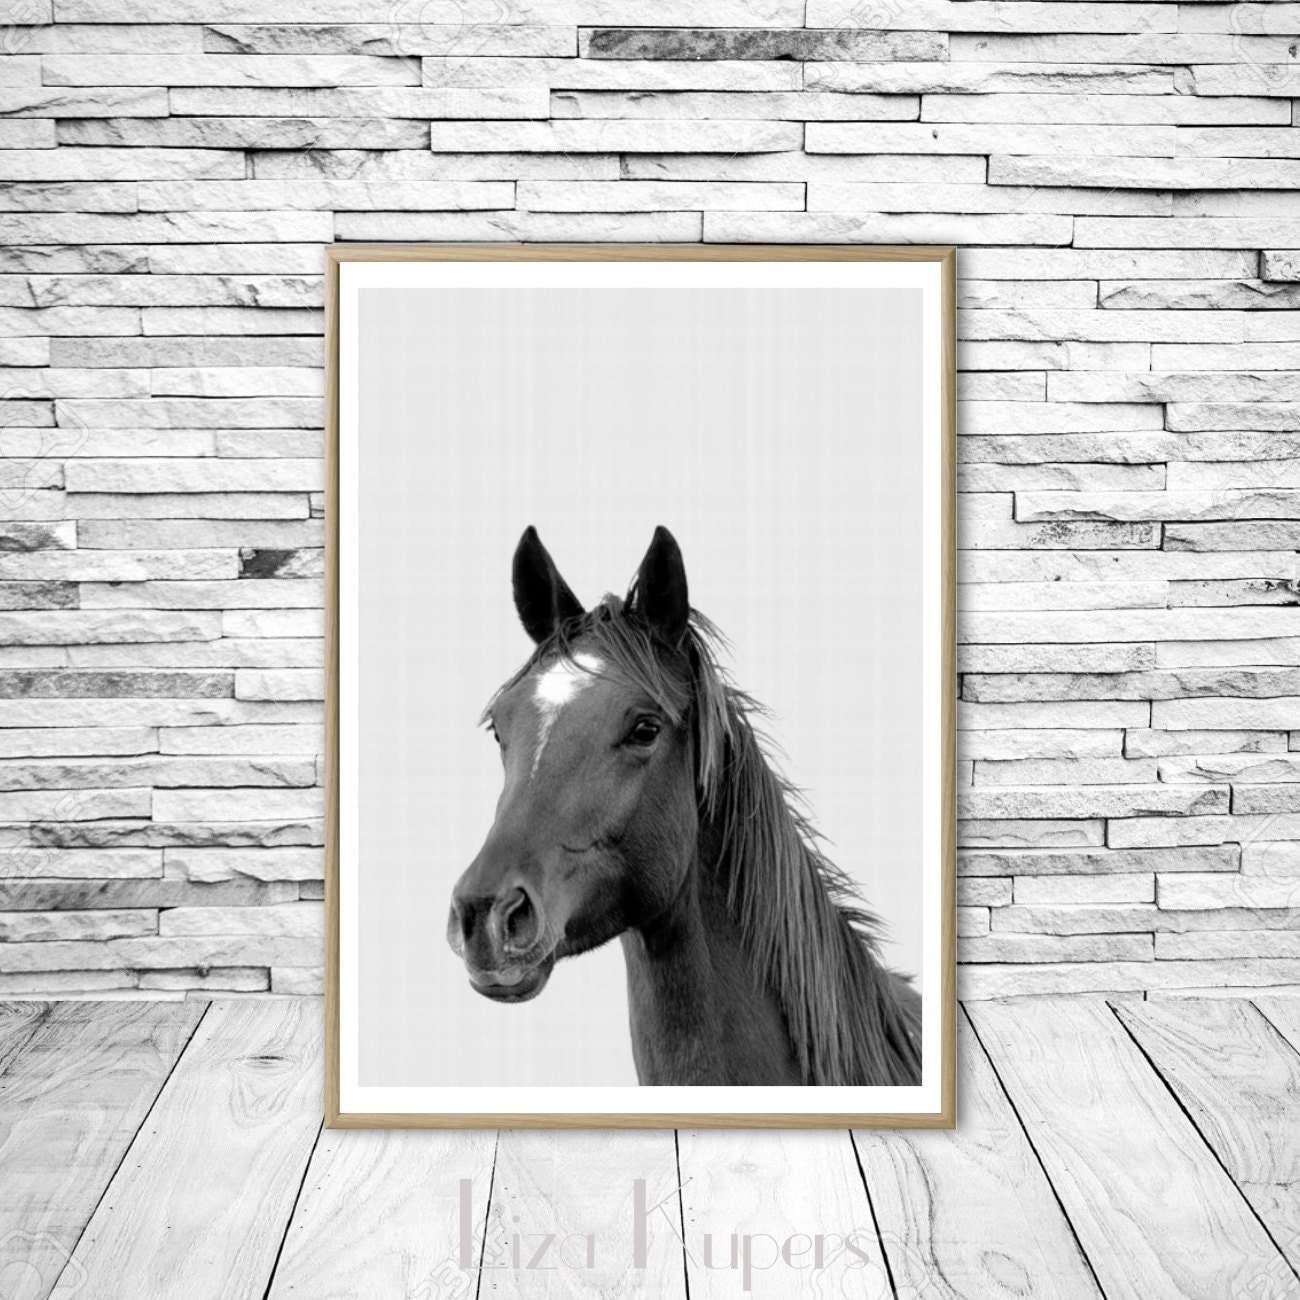 Wall Art Black Horse : Horse print art wall black and white by